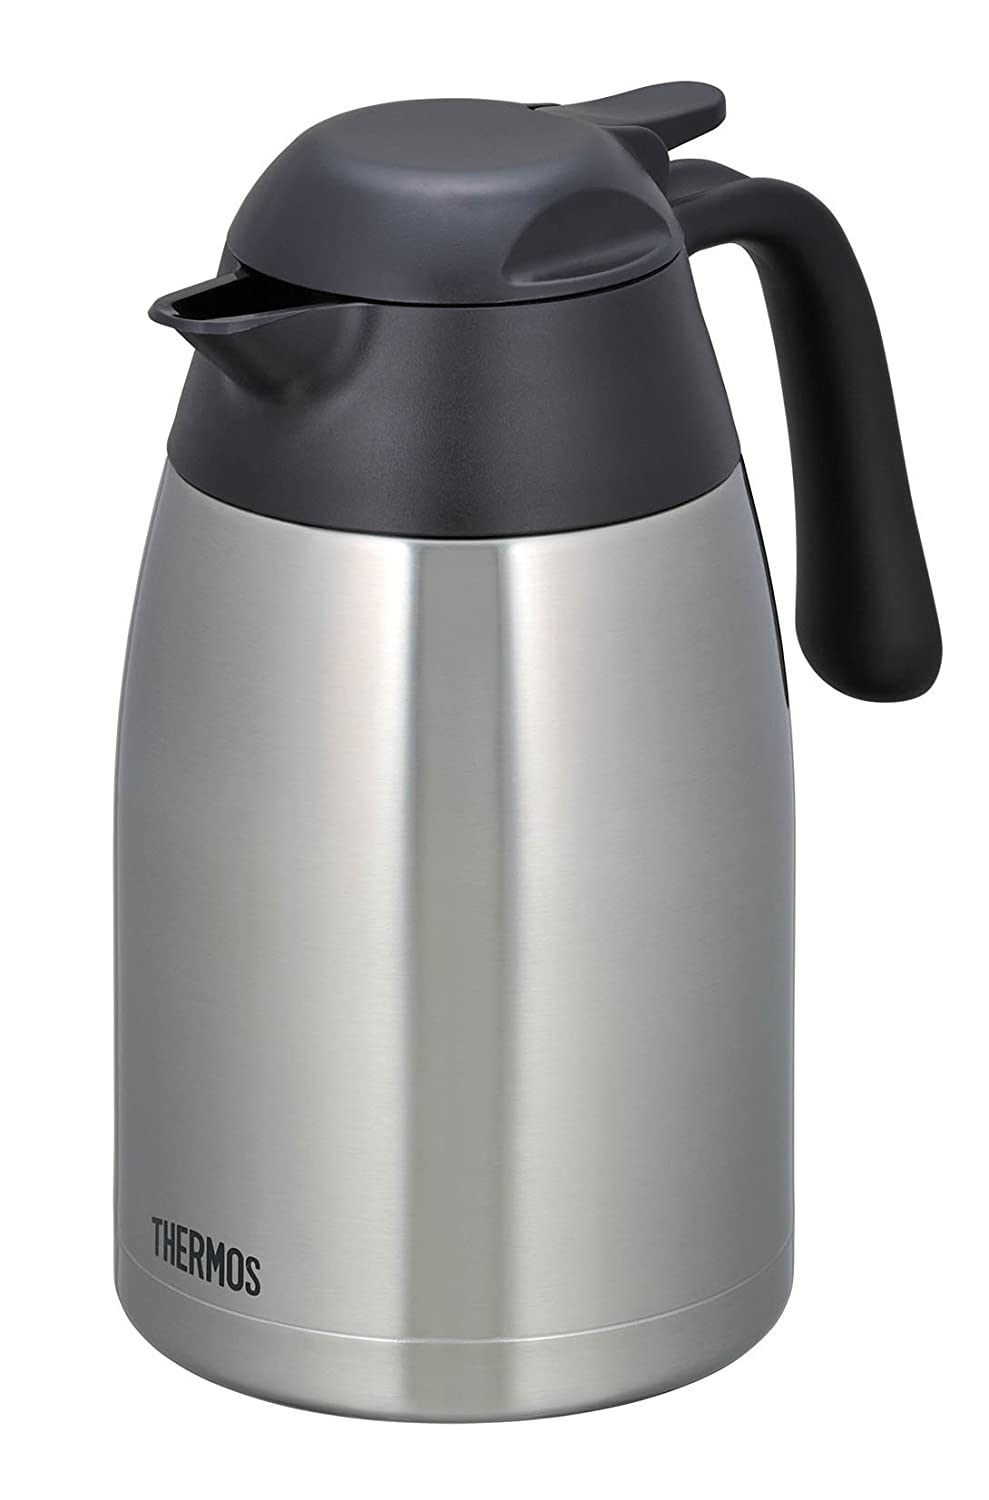 THERMOS (Thermos) stainless steel tabletop pot THX1500SBK BPTG403